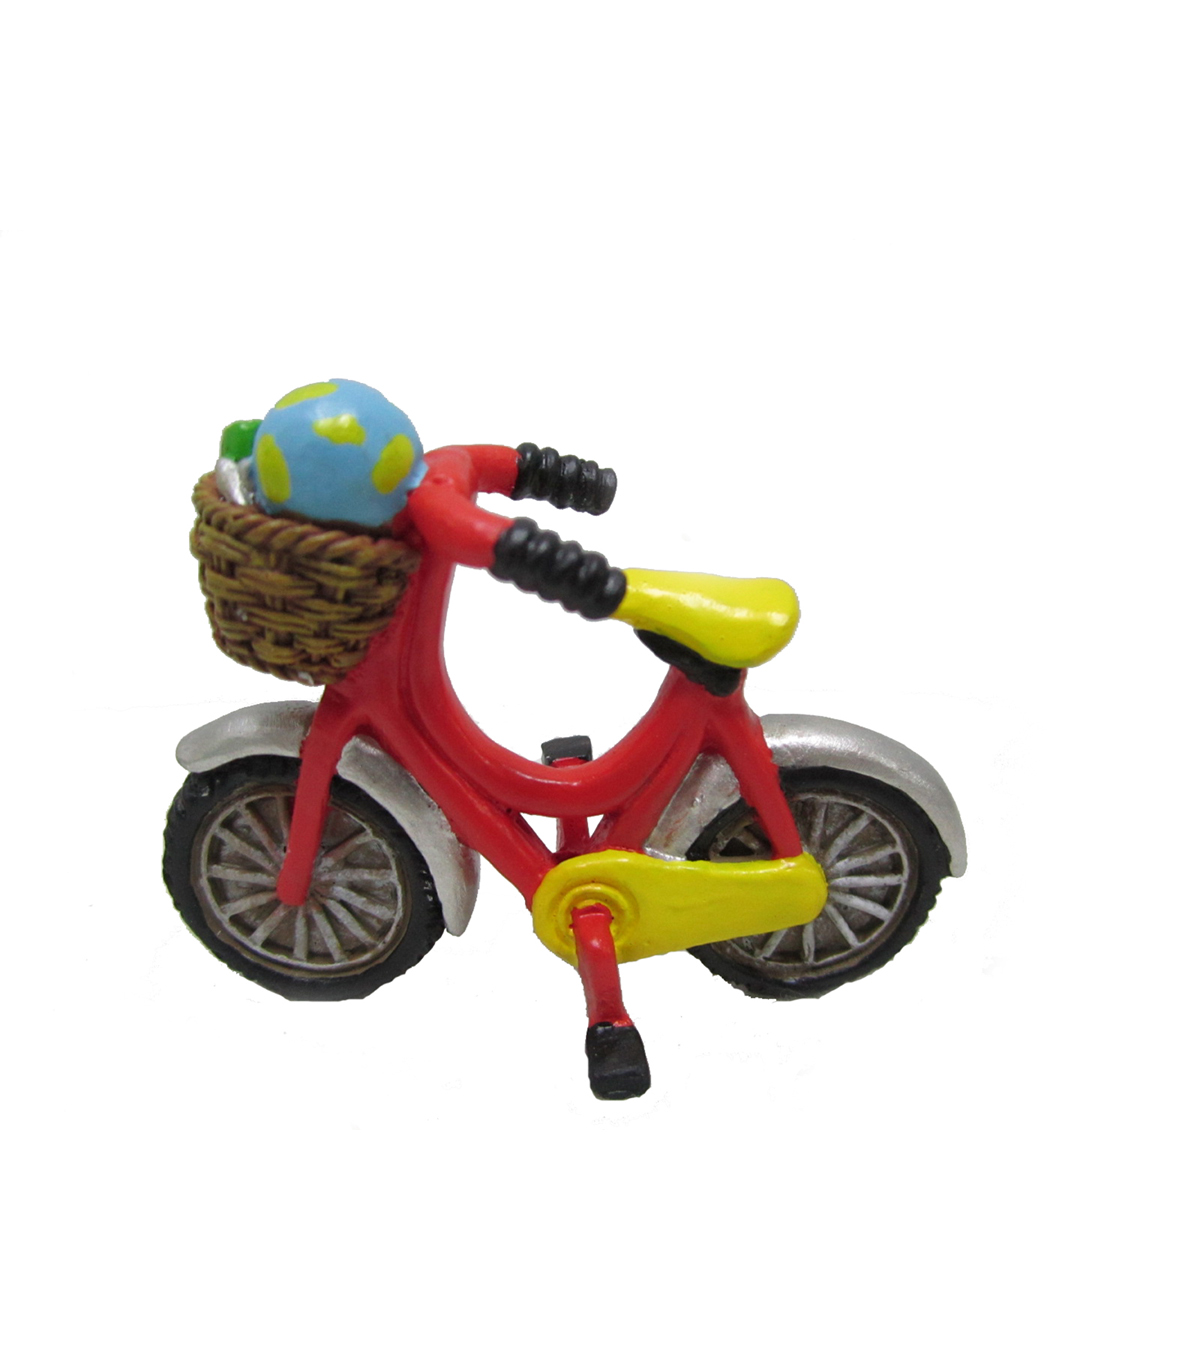 Bloom Room Littles Resin Bicycle with Globe